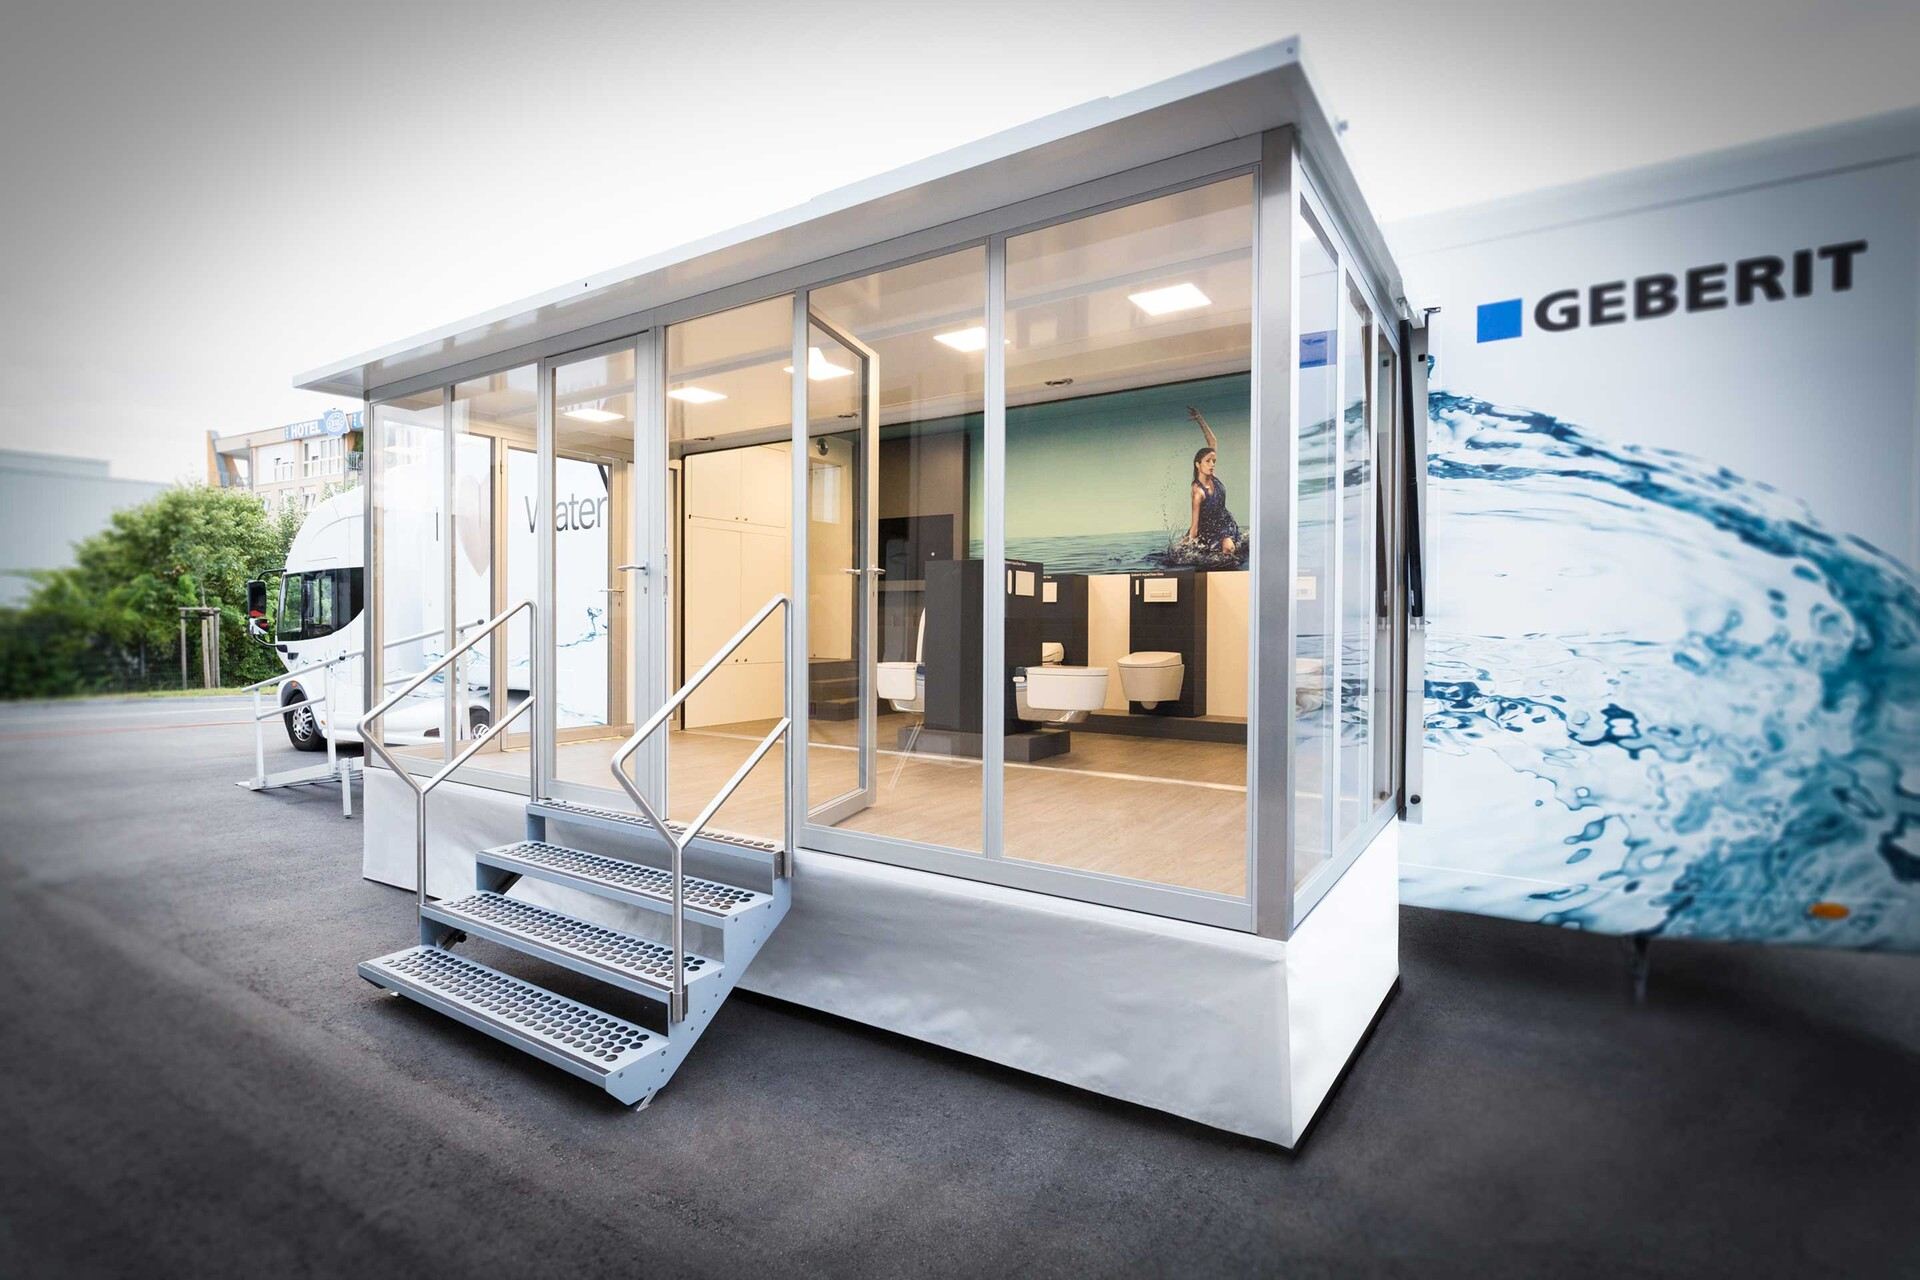 geberit-aquaclean-infomobil-showtruck-2.jpg